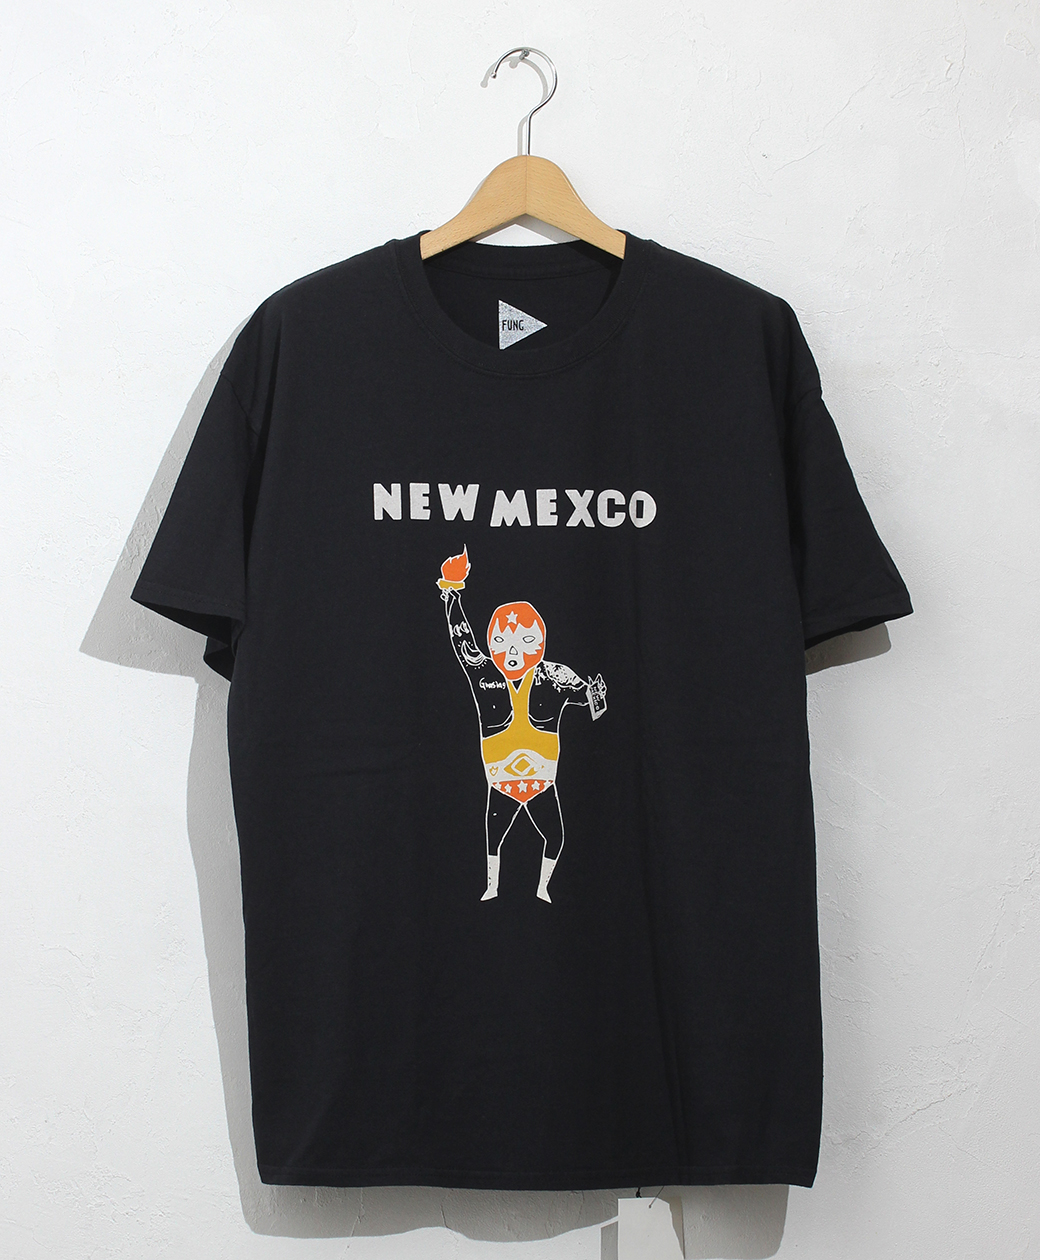 new mexco(black)